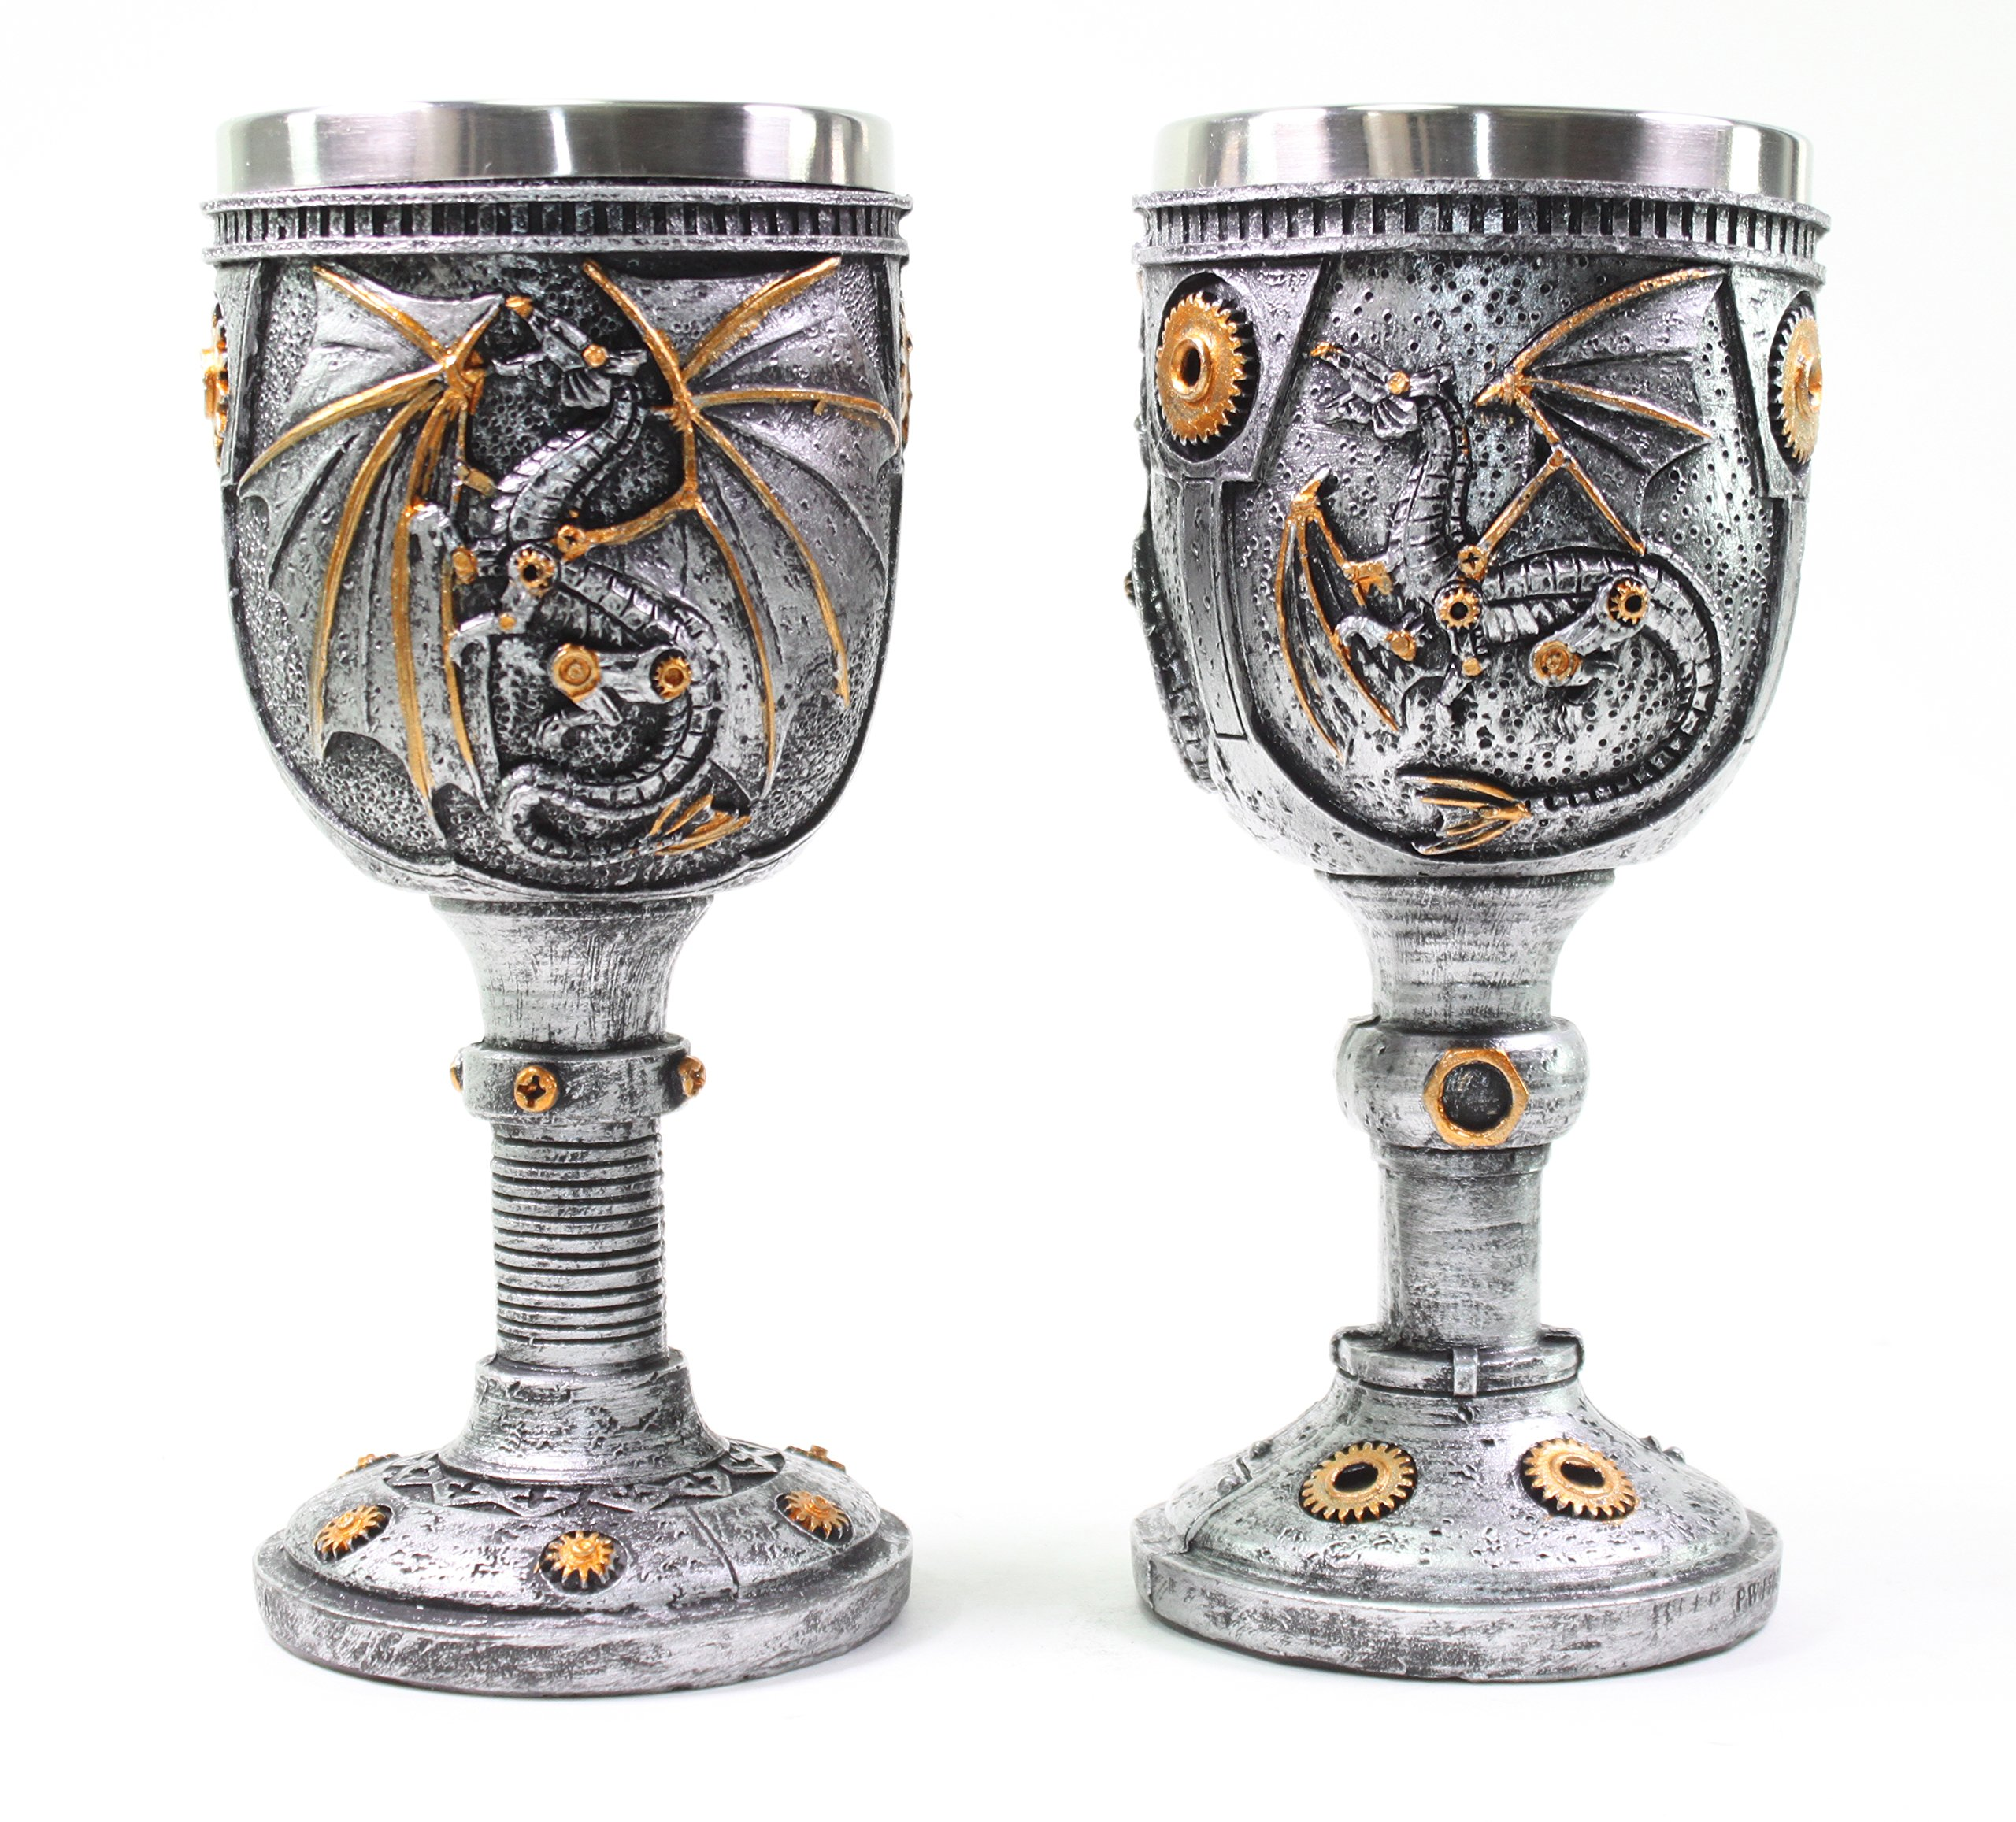 Mythical 2 Set of Silver Royal Dragon Wine Goblet Skulls Steampunk Collectible Medieval Magical Halloween Party Home Decor Gift